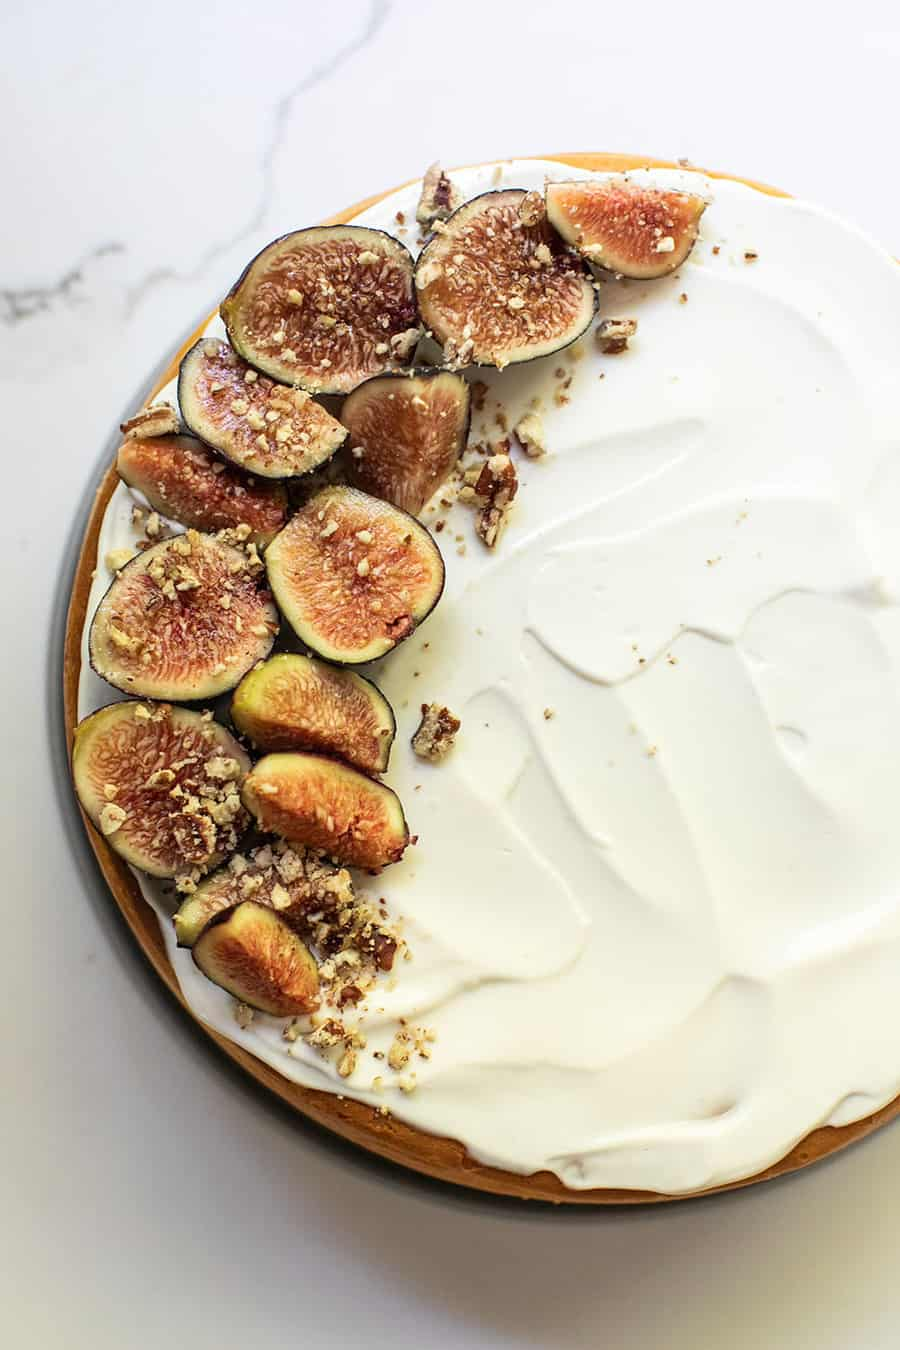 Cheesecake recipe with sour cream topping and figs with walnut